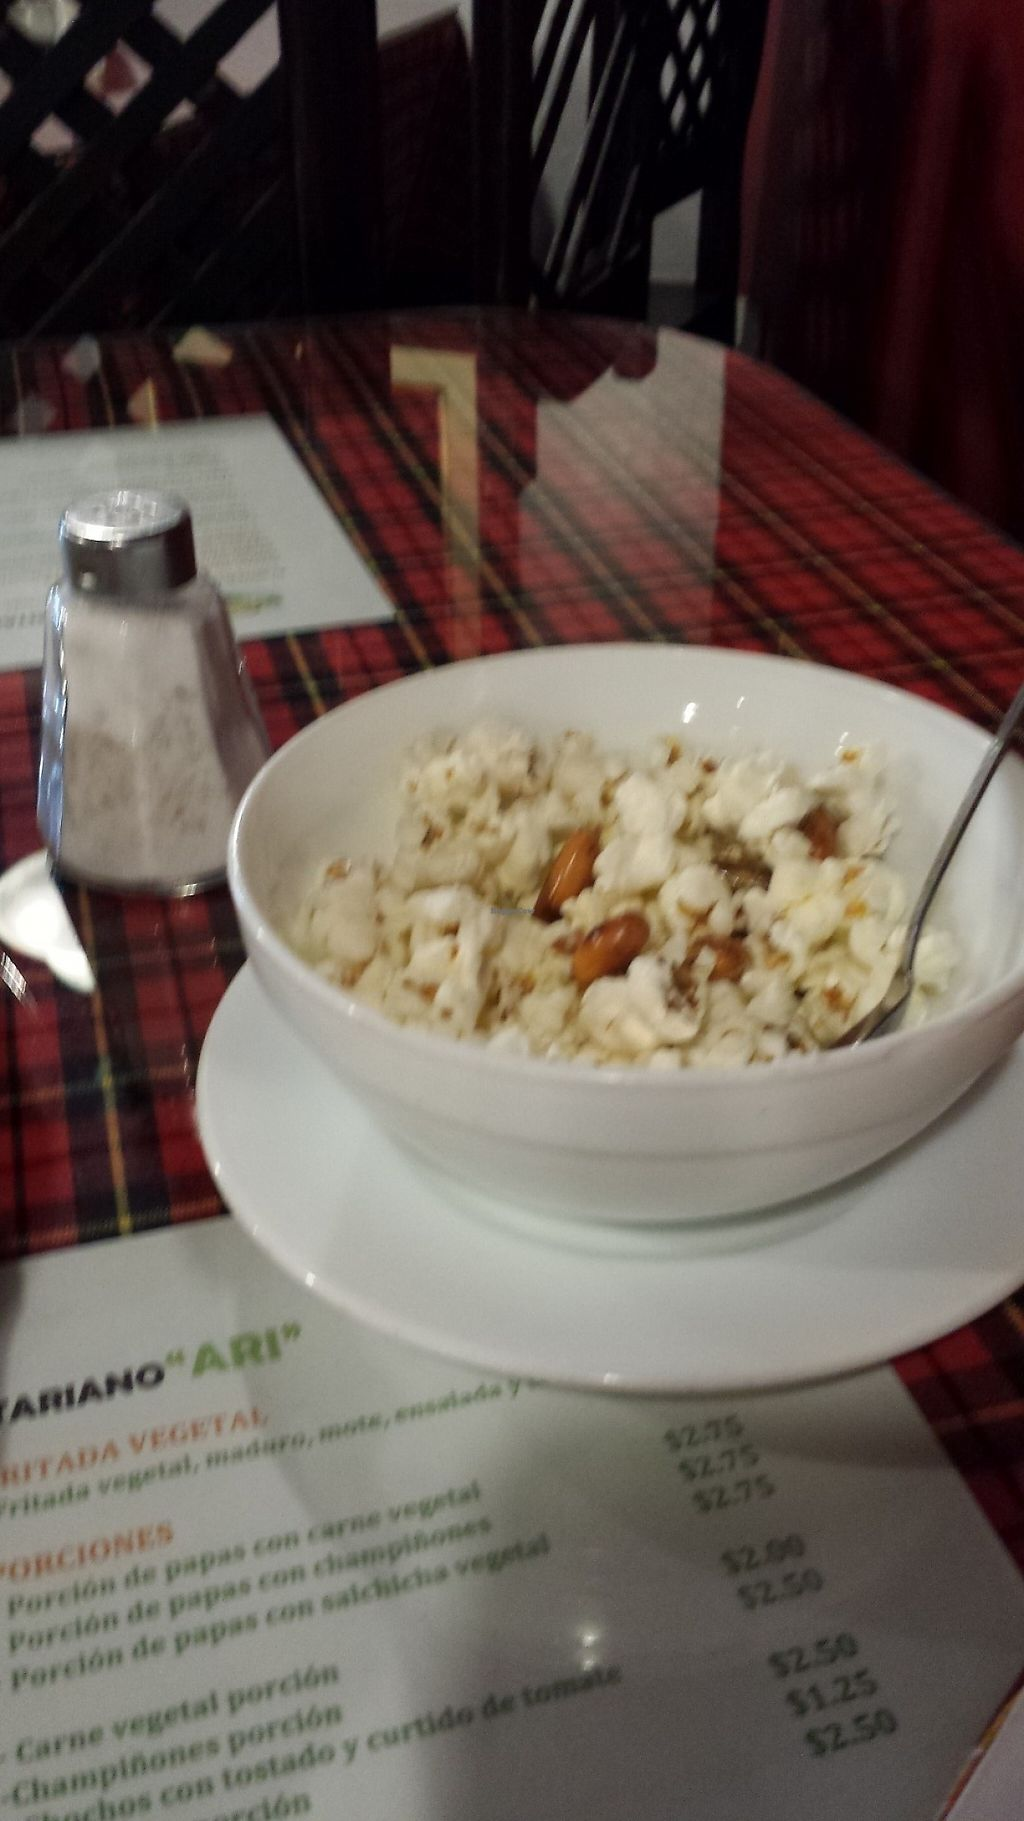 """Photo of Ari Comida Sana  by <a href=""""/members/profile/Yona"""">Yona</a> <br/>Free popcorn while you wait <br/> June 1, 2017  - <a href='/contact/abuse/image/16990/264694'>Report</a>"""